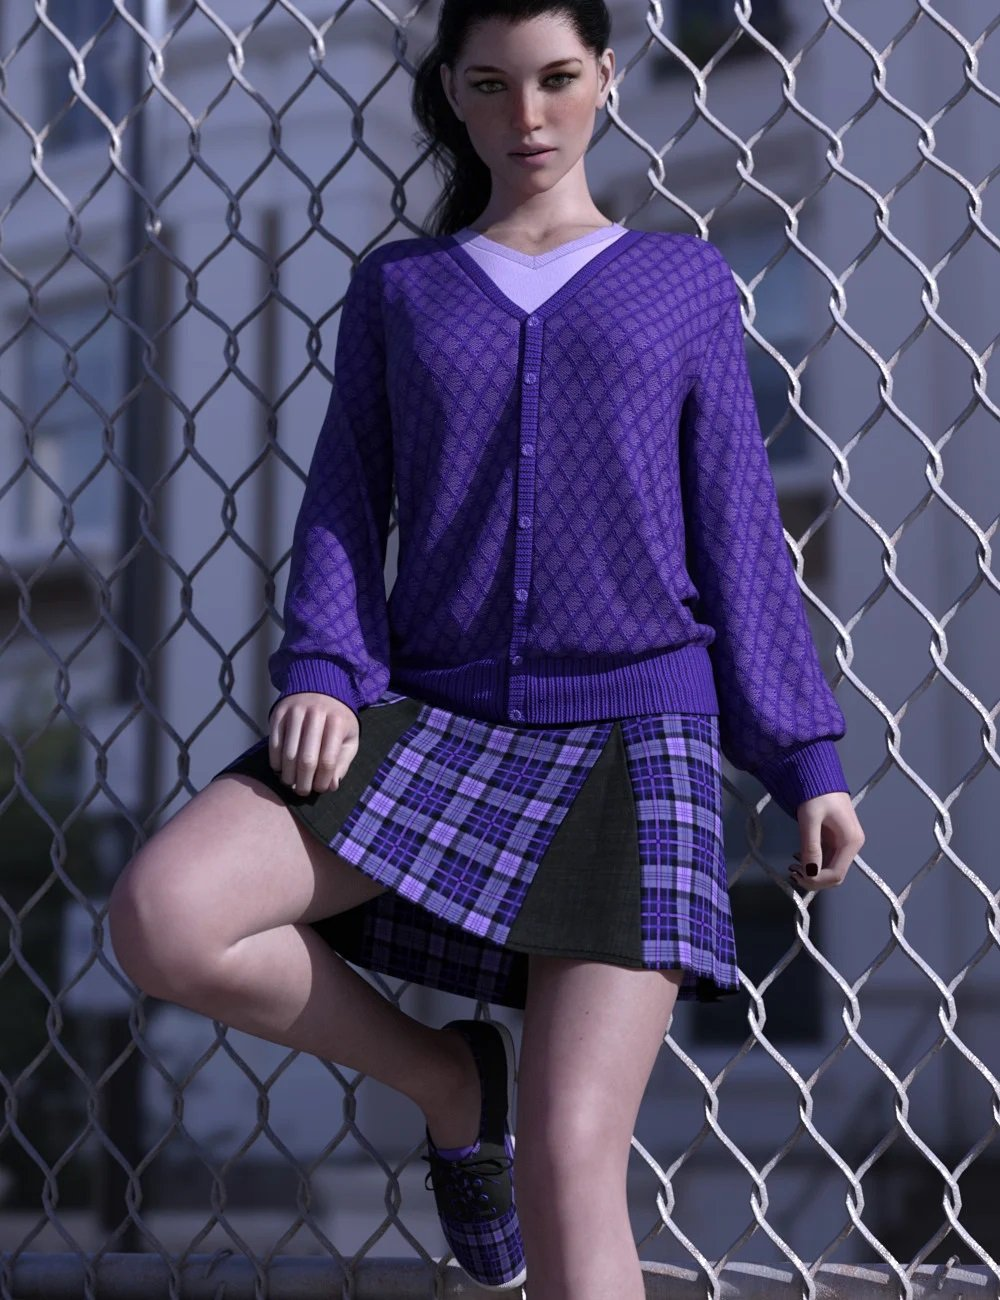 dForce Preppy Girl Outfit for Genesis 8 Females